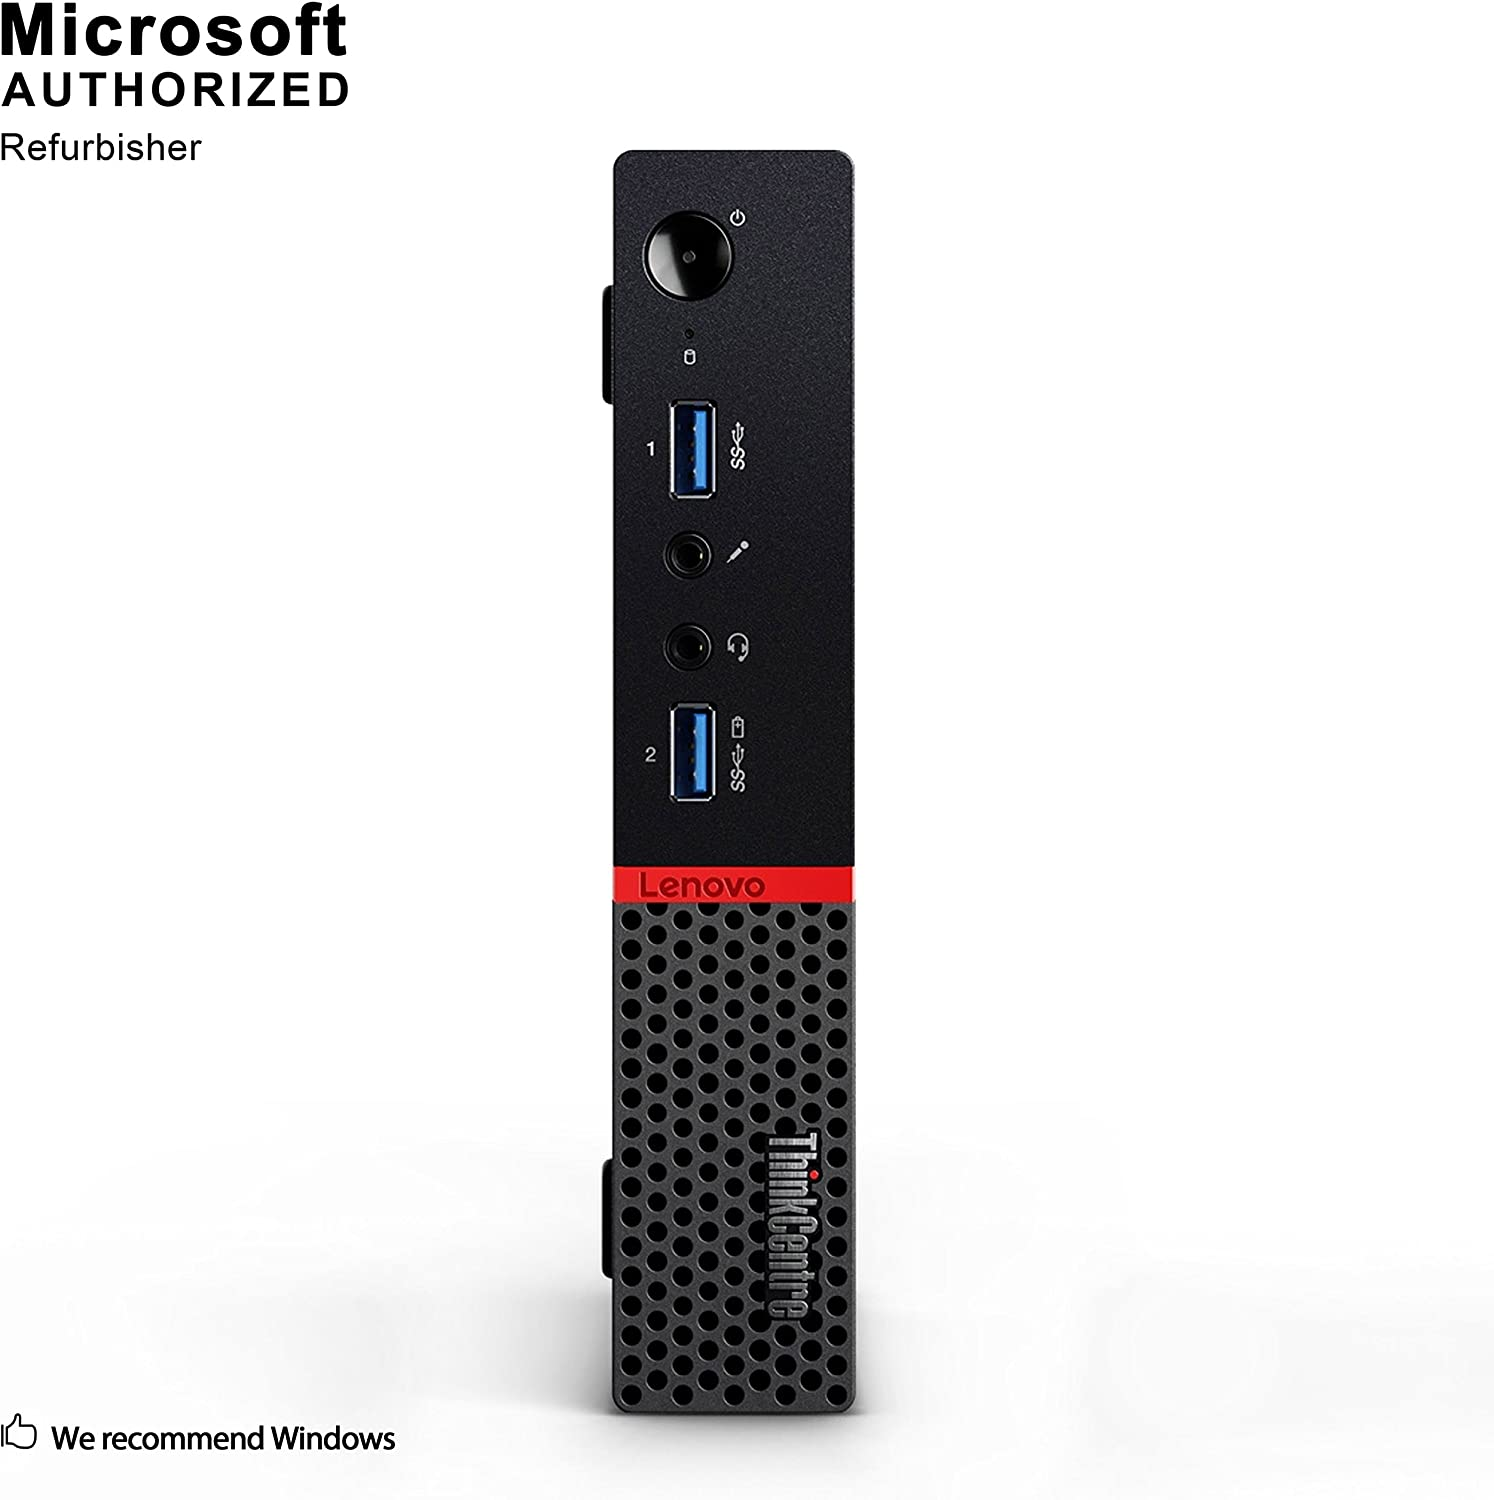 Lenovo ThinkCentre M700 Tiny Business Desktop PC, Intel Quad Core i5-6500T up to 3.1GHz, 8G DDR4, 512G SSD, WiFi, Bluetooth 4.0, Windows 10 64-Multi-Language Support English/Spanish/French (Renewed)